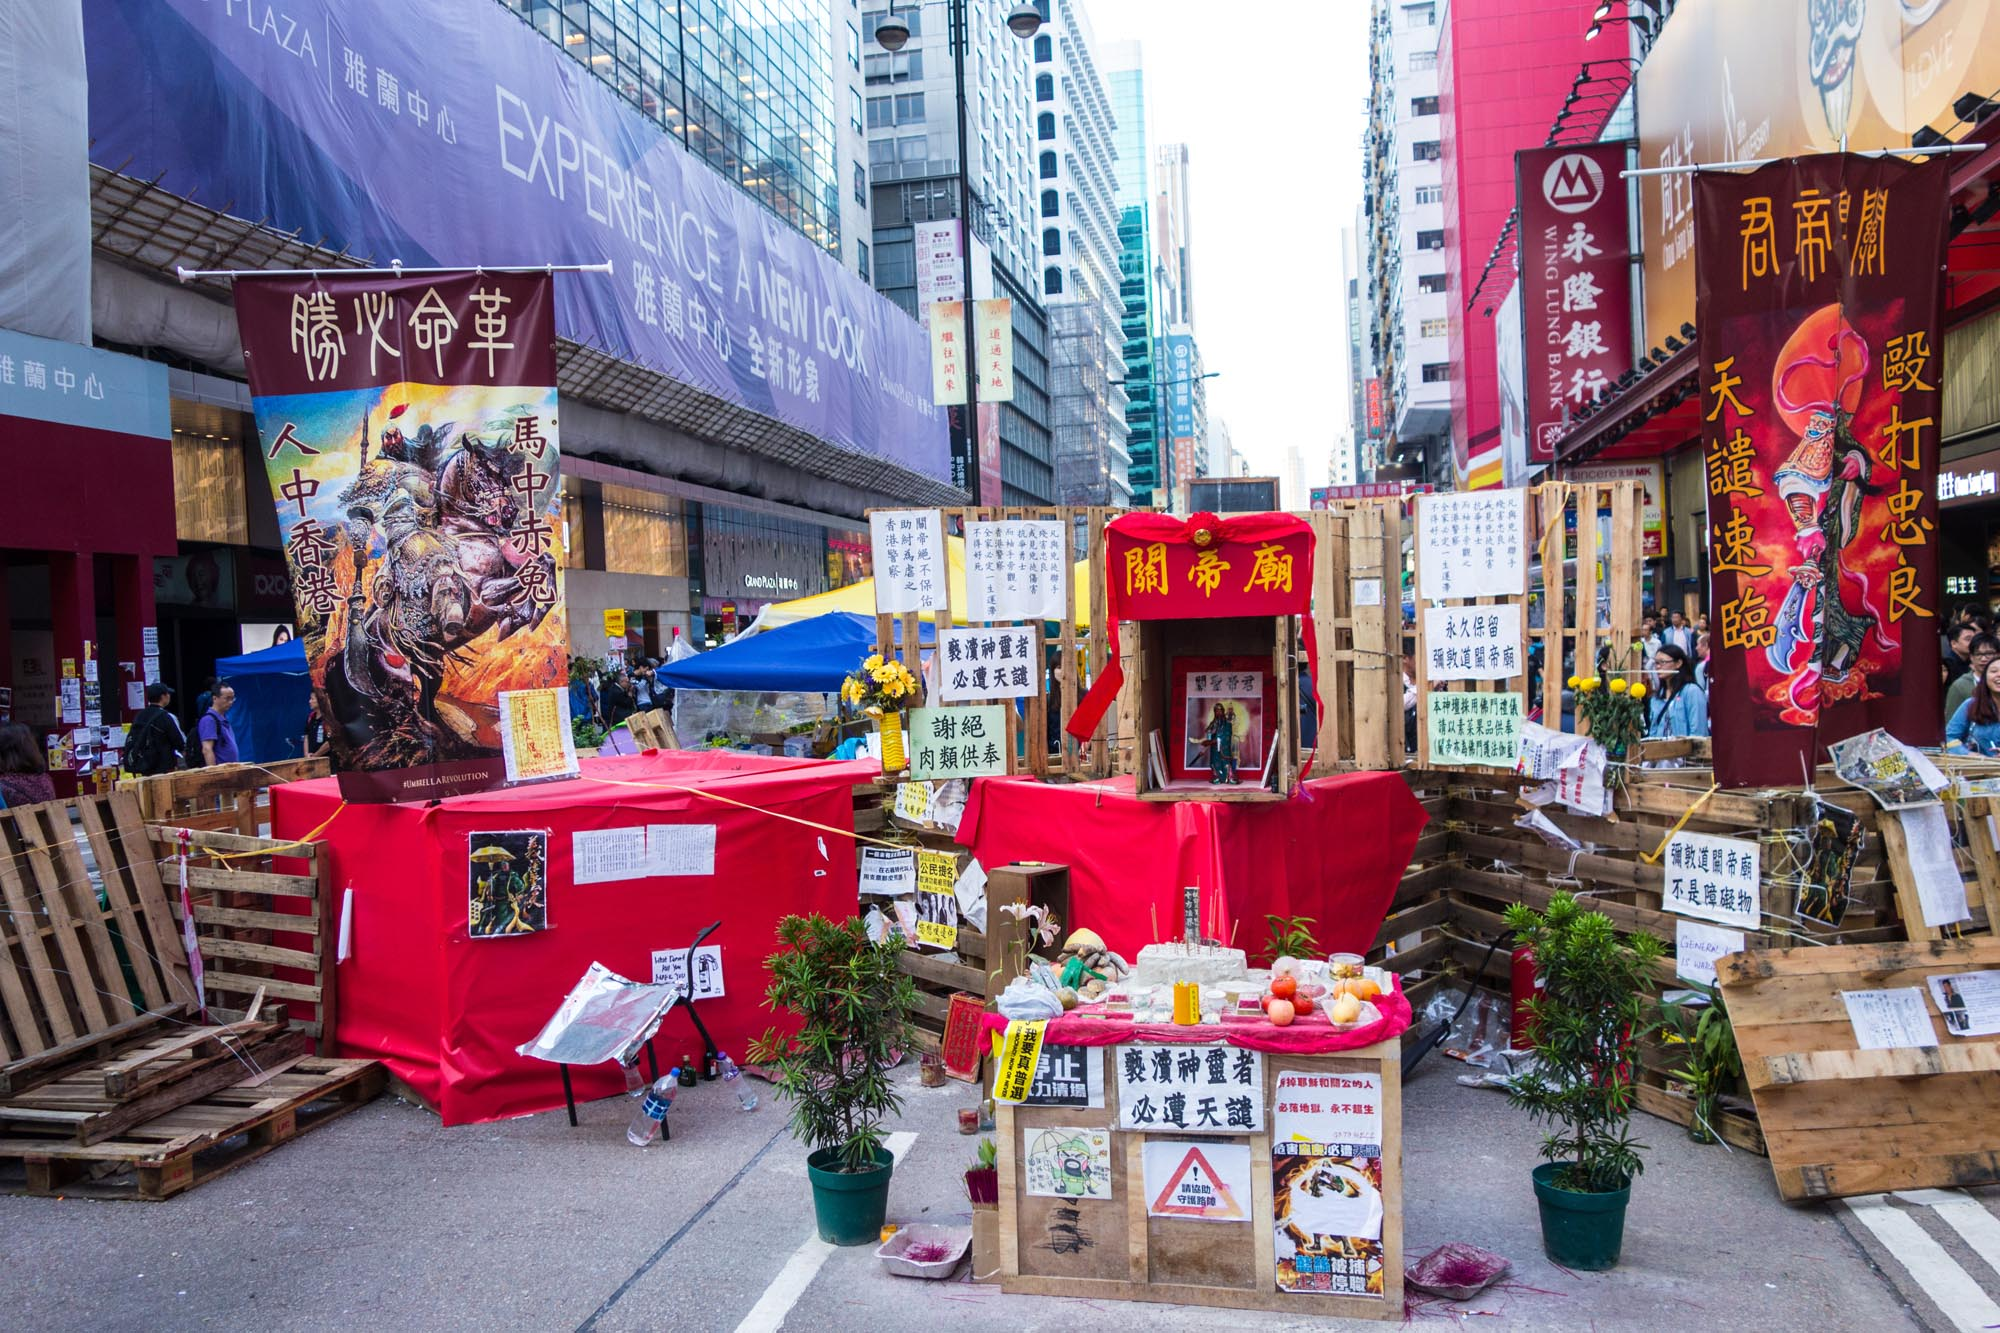 Urban Planning, Architecture without Architect, Mong Kok, tents, street art